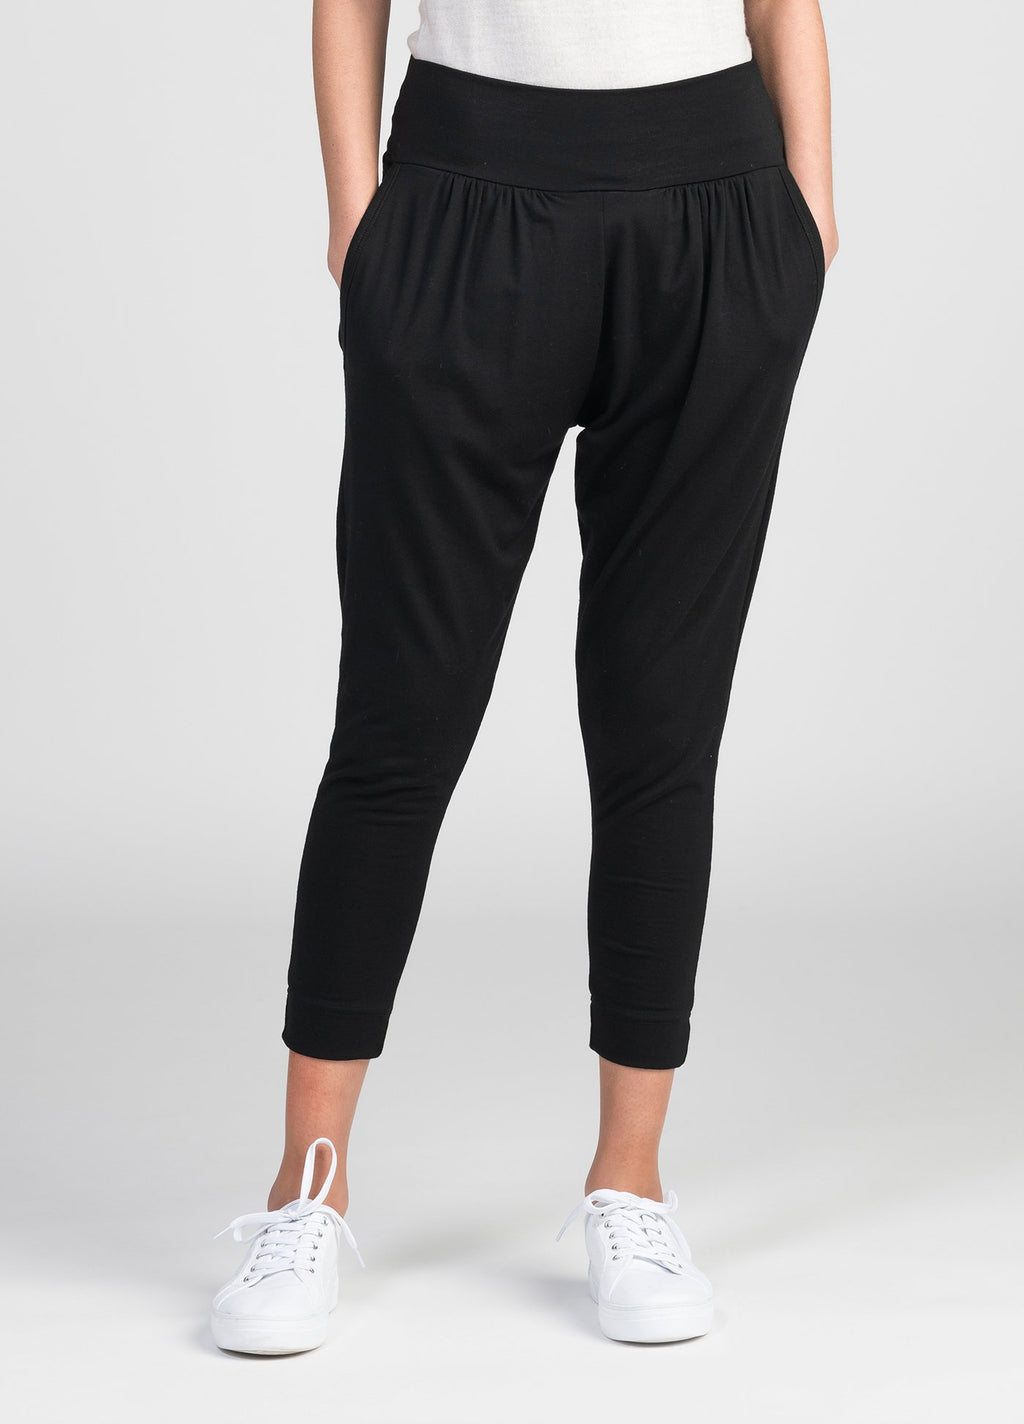 SLIM POCKET PANT - Woolshed Gallery